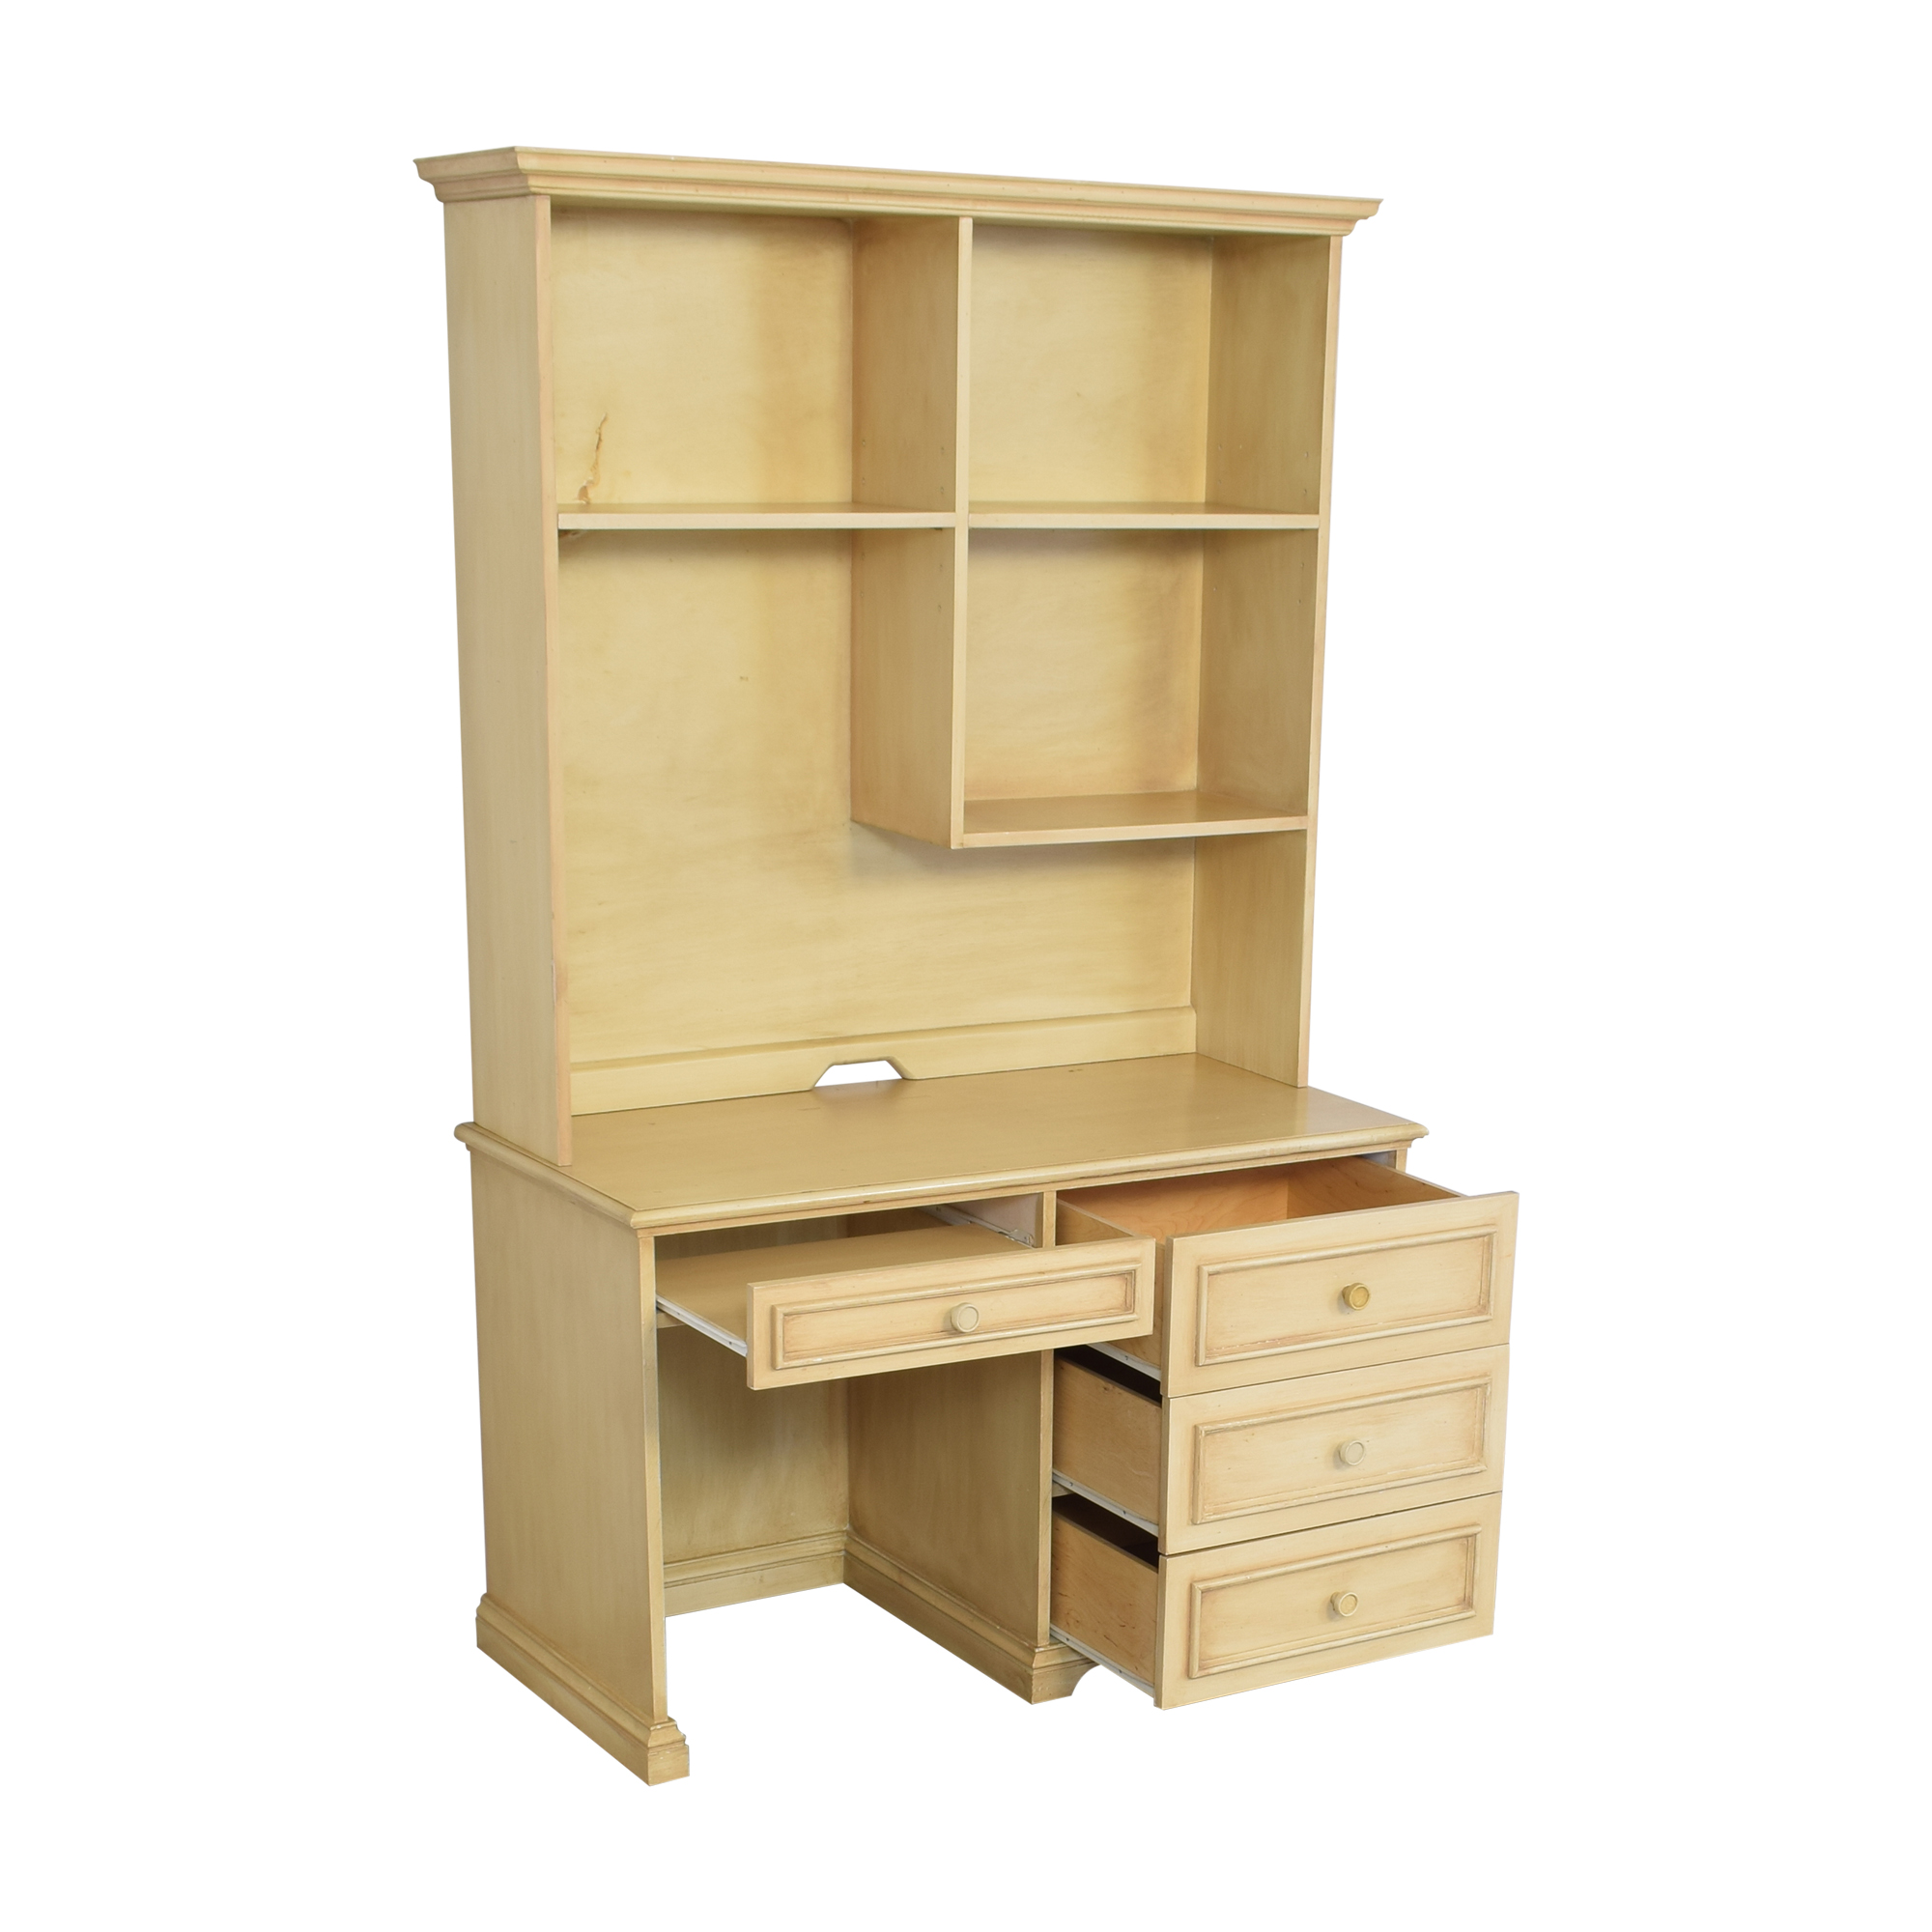 Just Kids Desk with Hutch sale